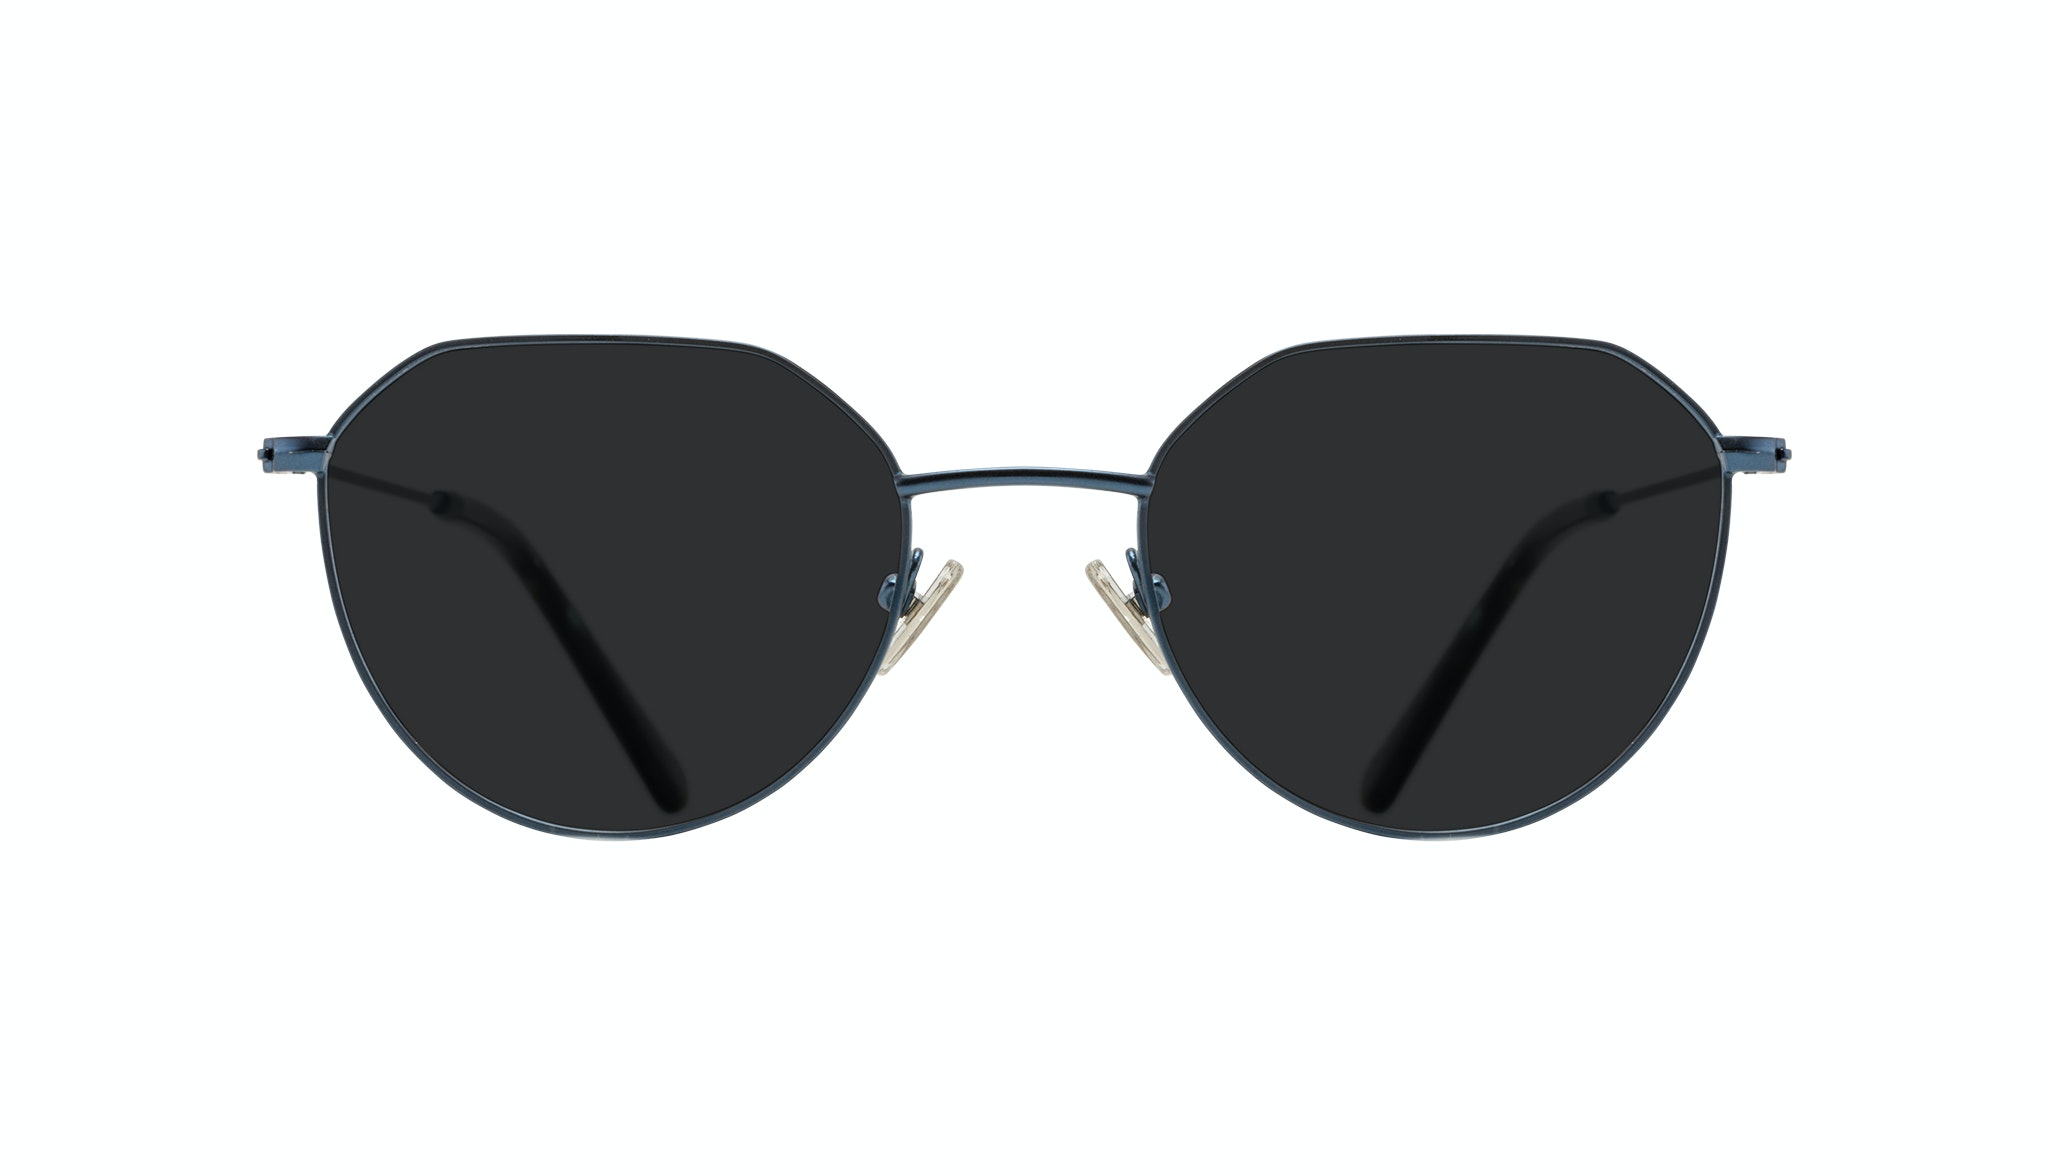 Affordable Fashion Glasses Round Sunglasses Women Prism Marine Front